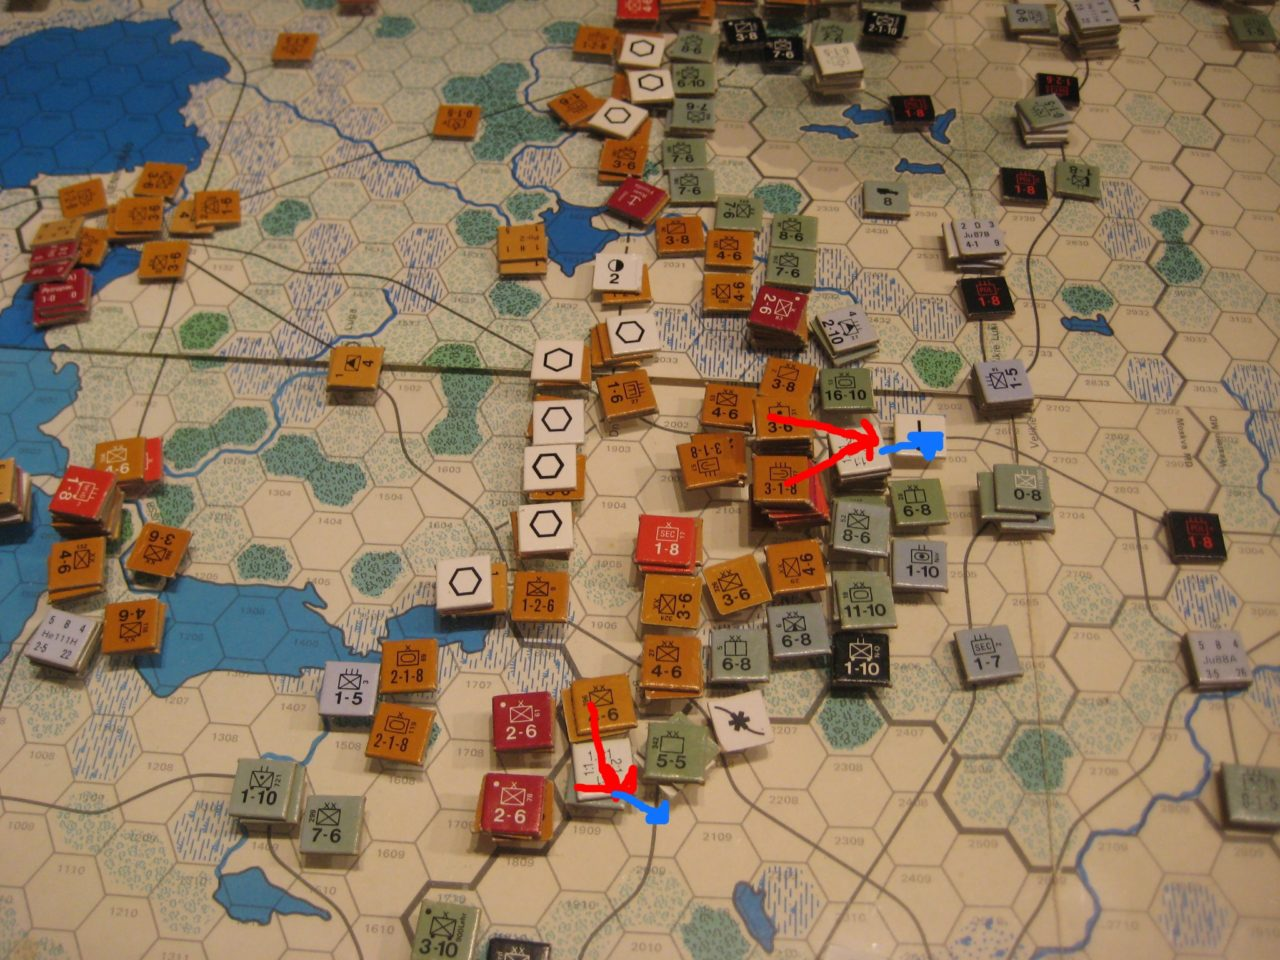 Soviet Mar I 42: Soviet winter offensive slowly pushes Germans back into the Baltic